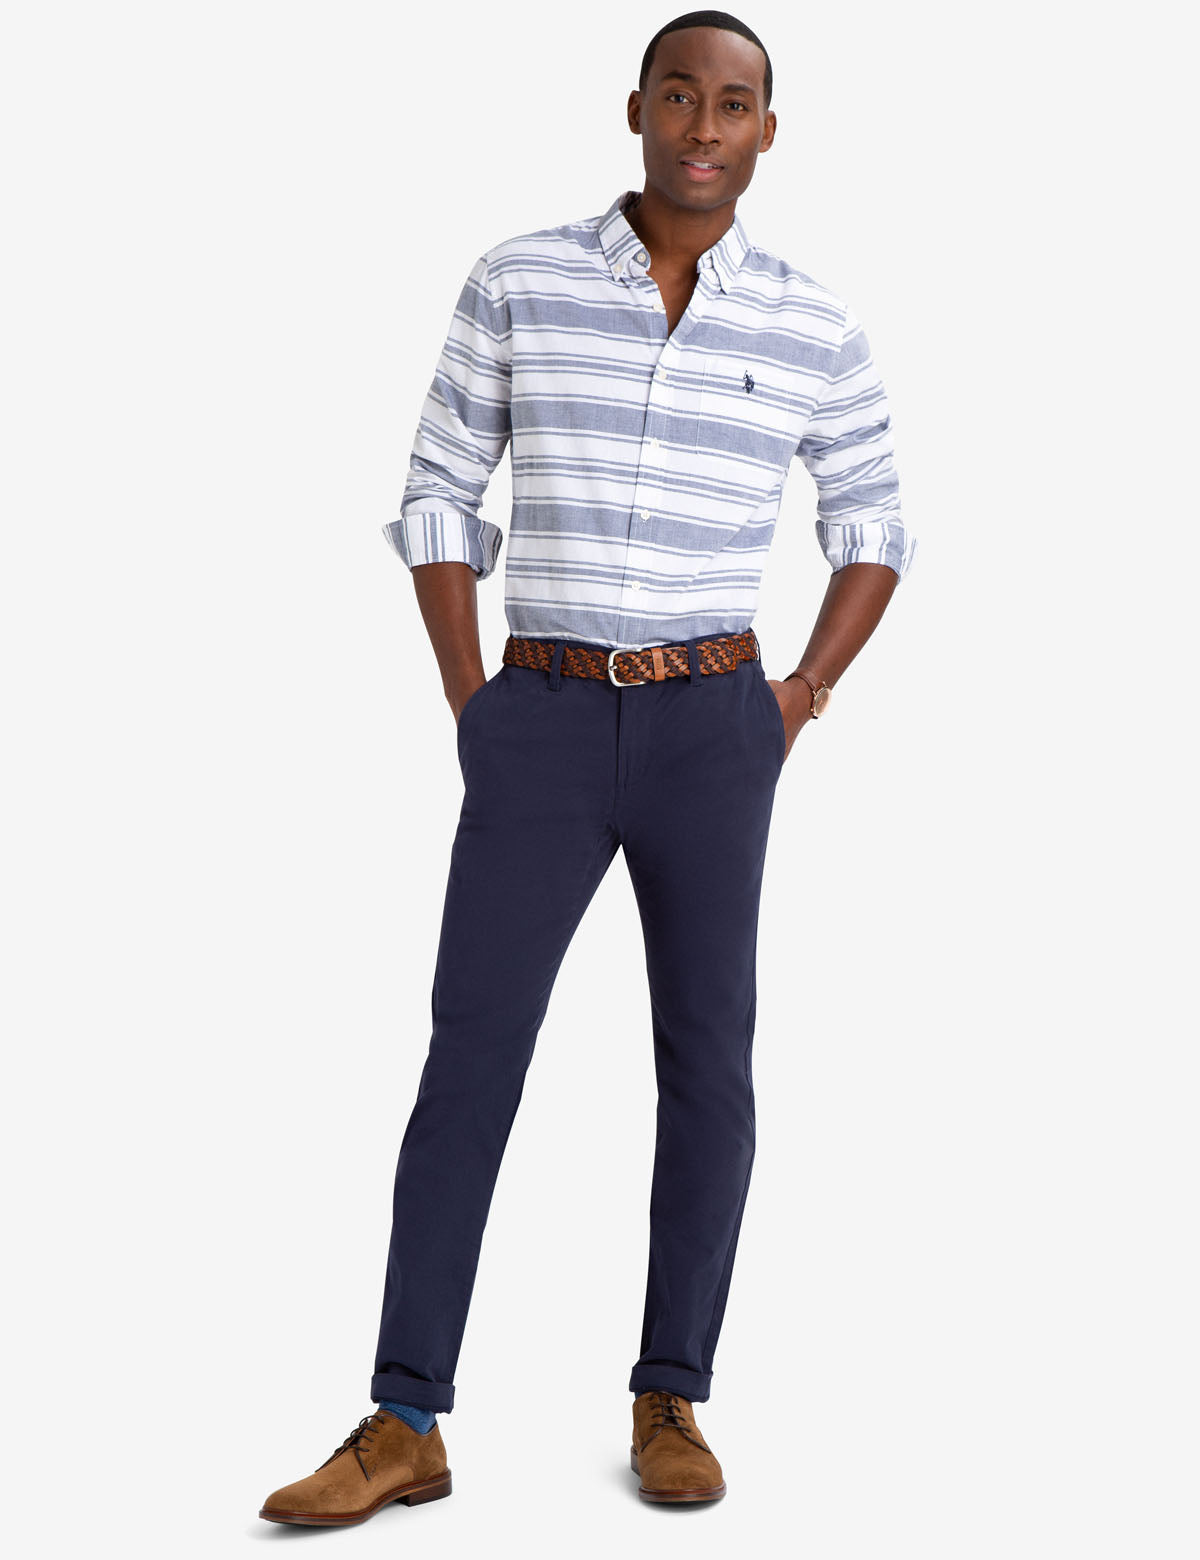 BLACK MALLET CLASSIC FIT HORIZONTAL STRIPE SHIRT - U.S. Polo Assn.